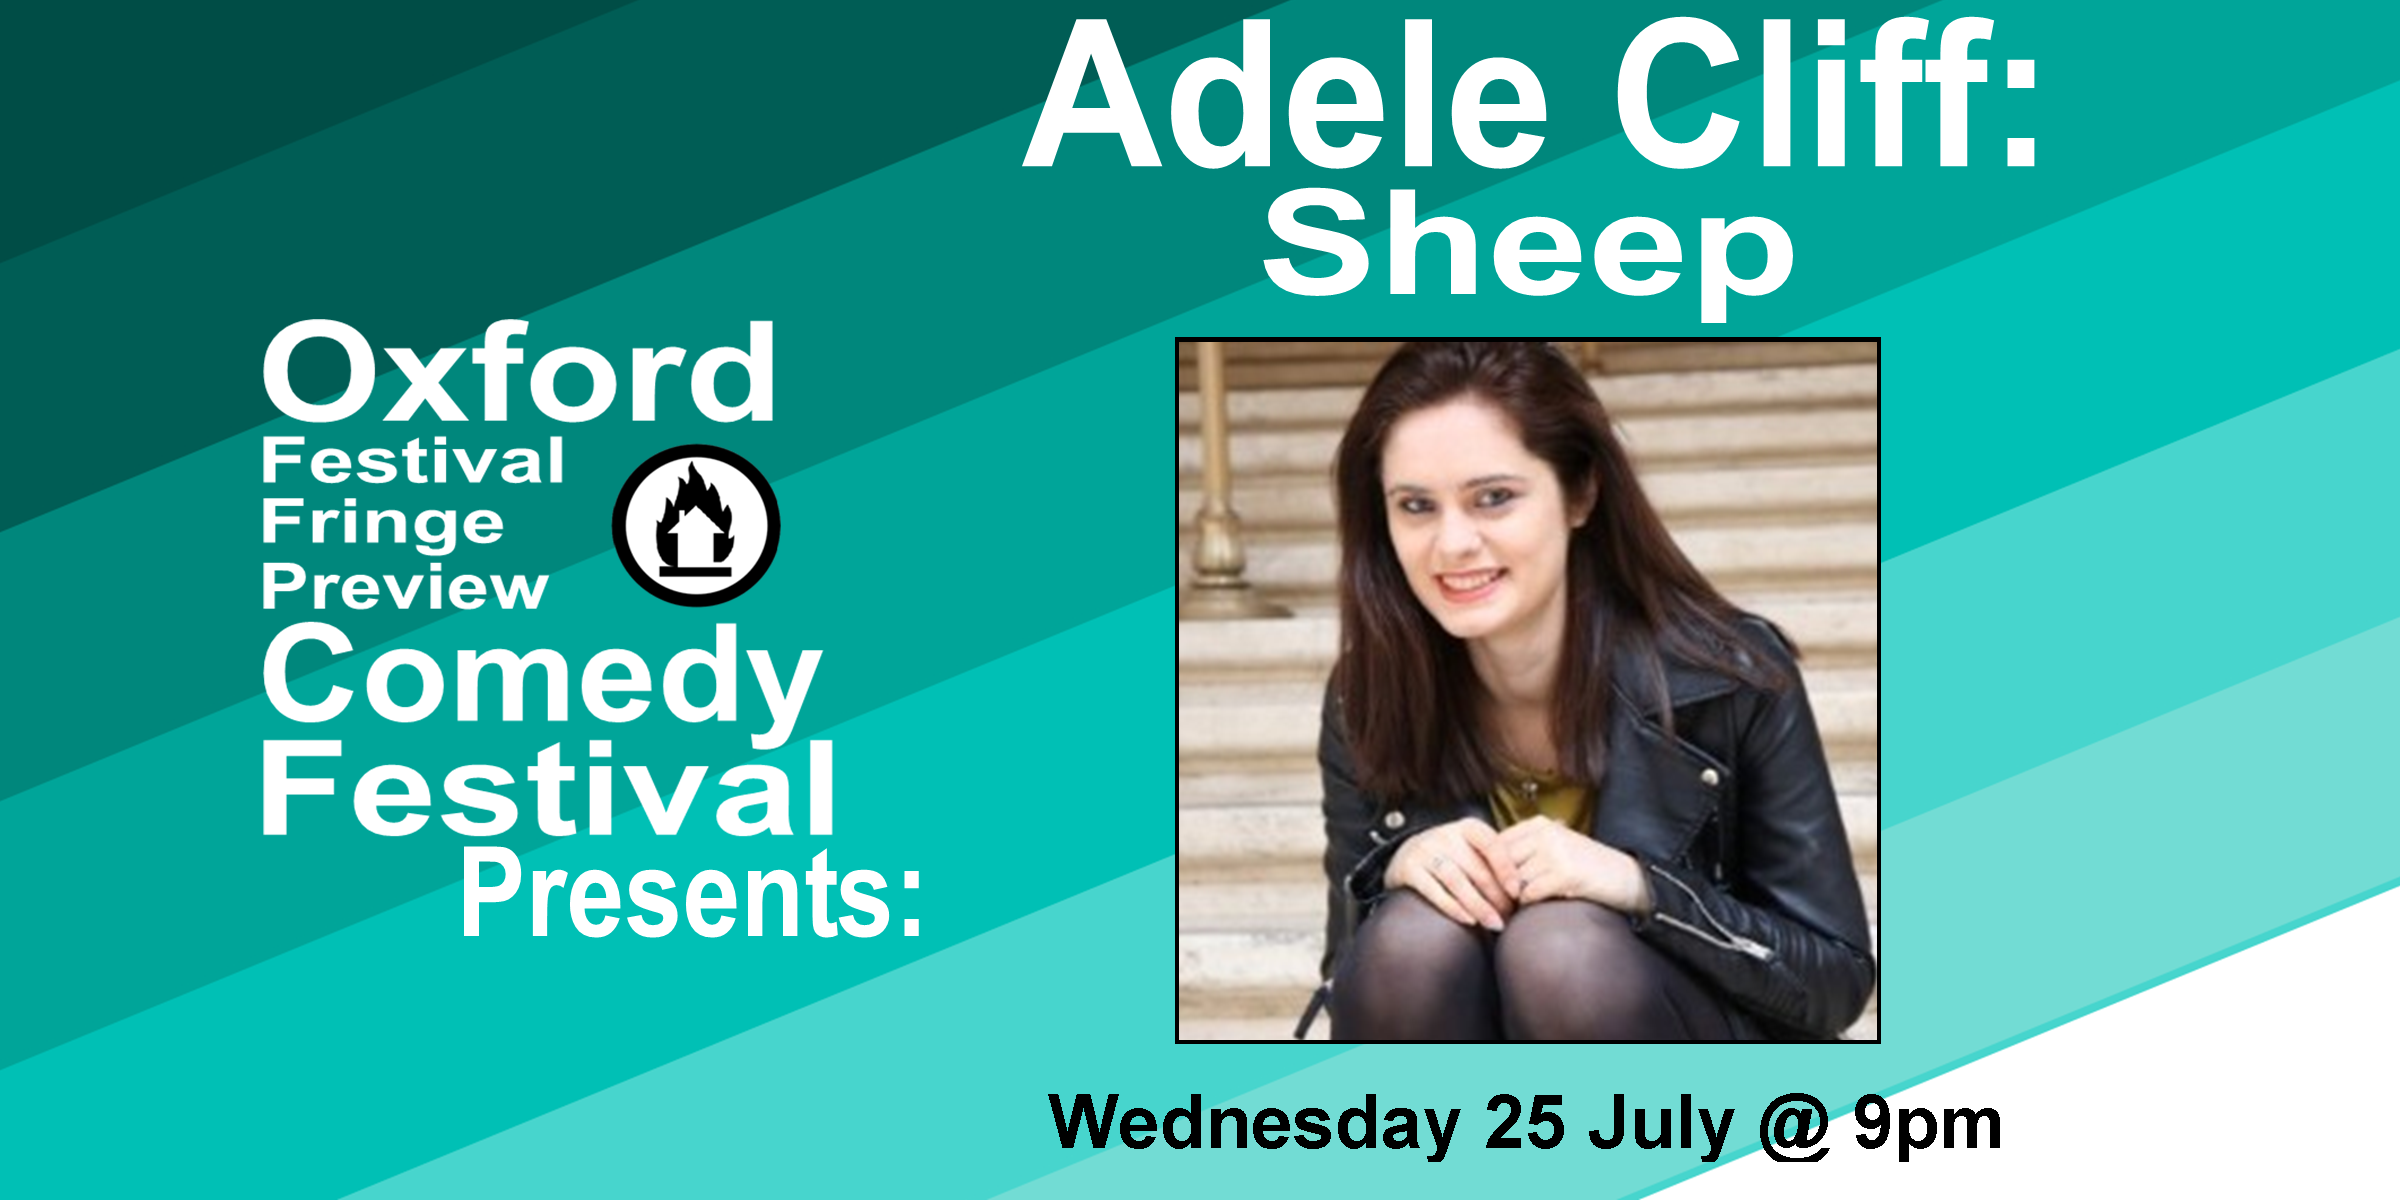 Adele Cliff: Sheep at the Oxford Festival Fringe Preview Comedy Festival